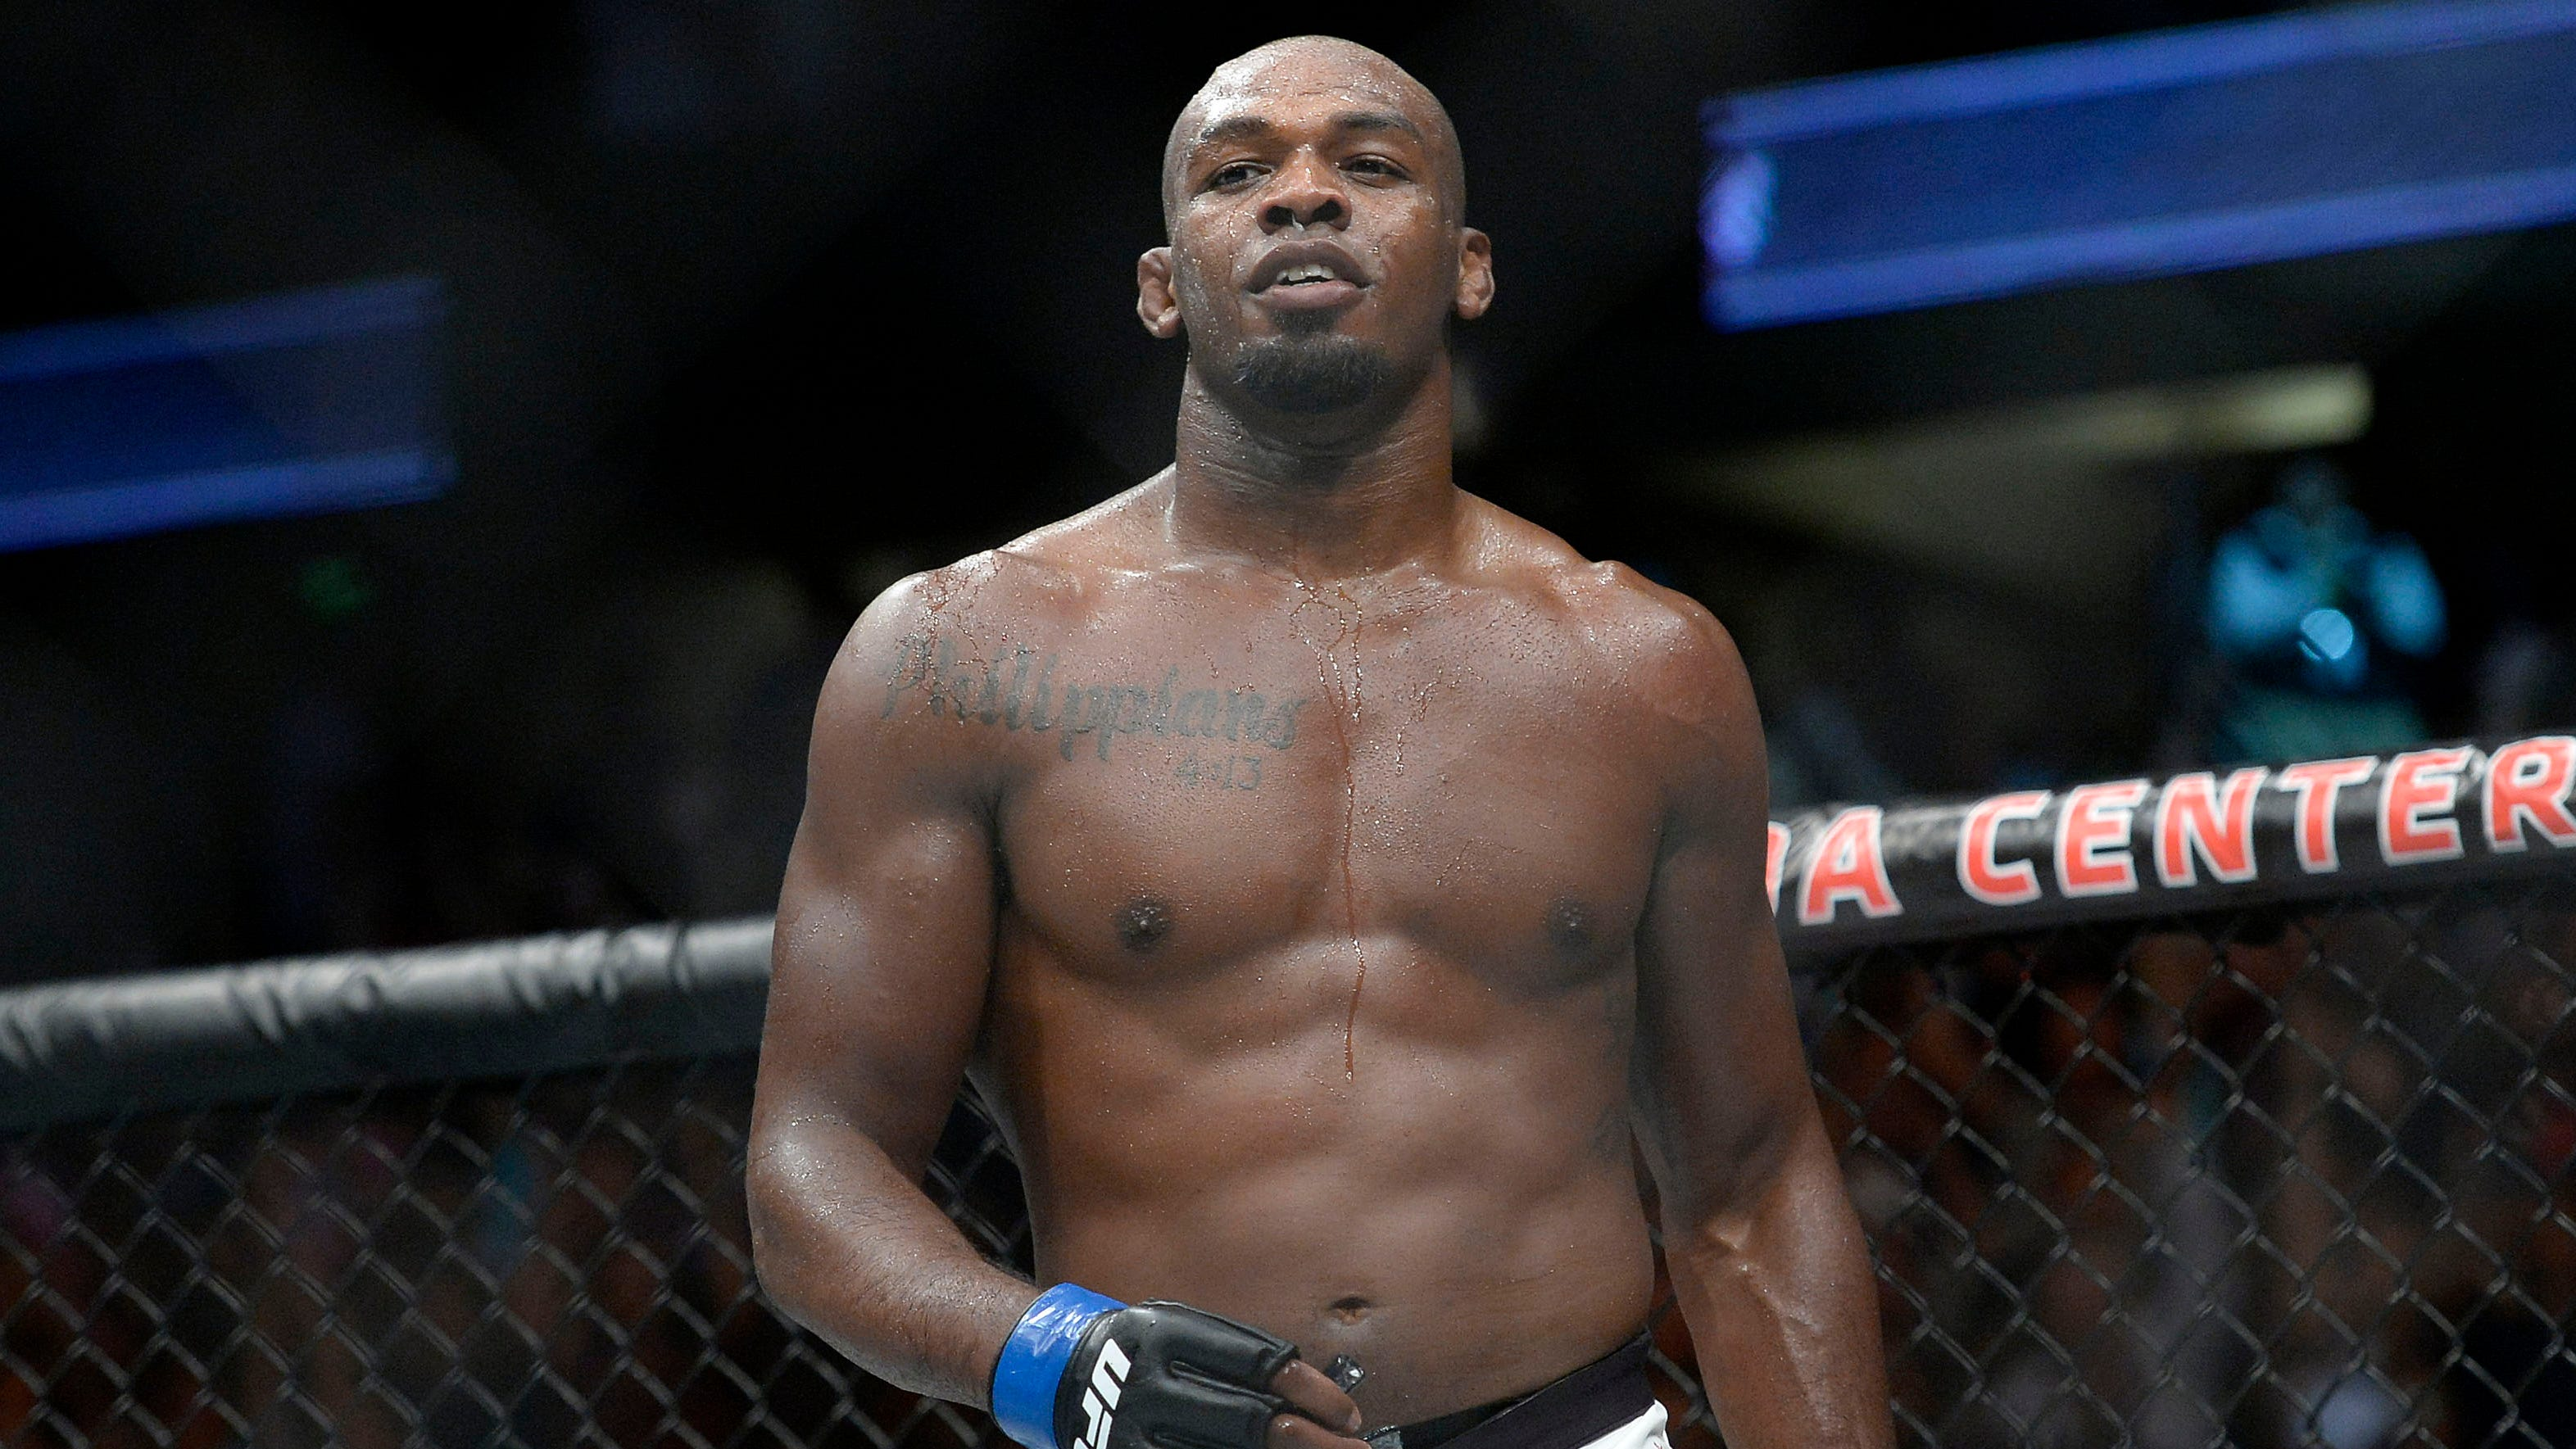 UFC champ Jon Jones has residual steroid metabolite in system